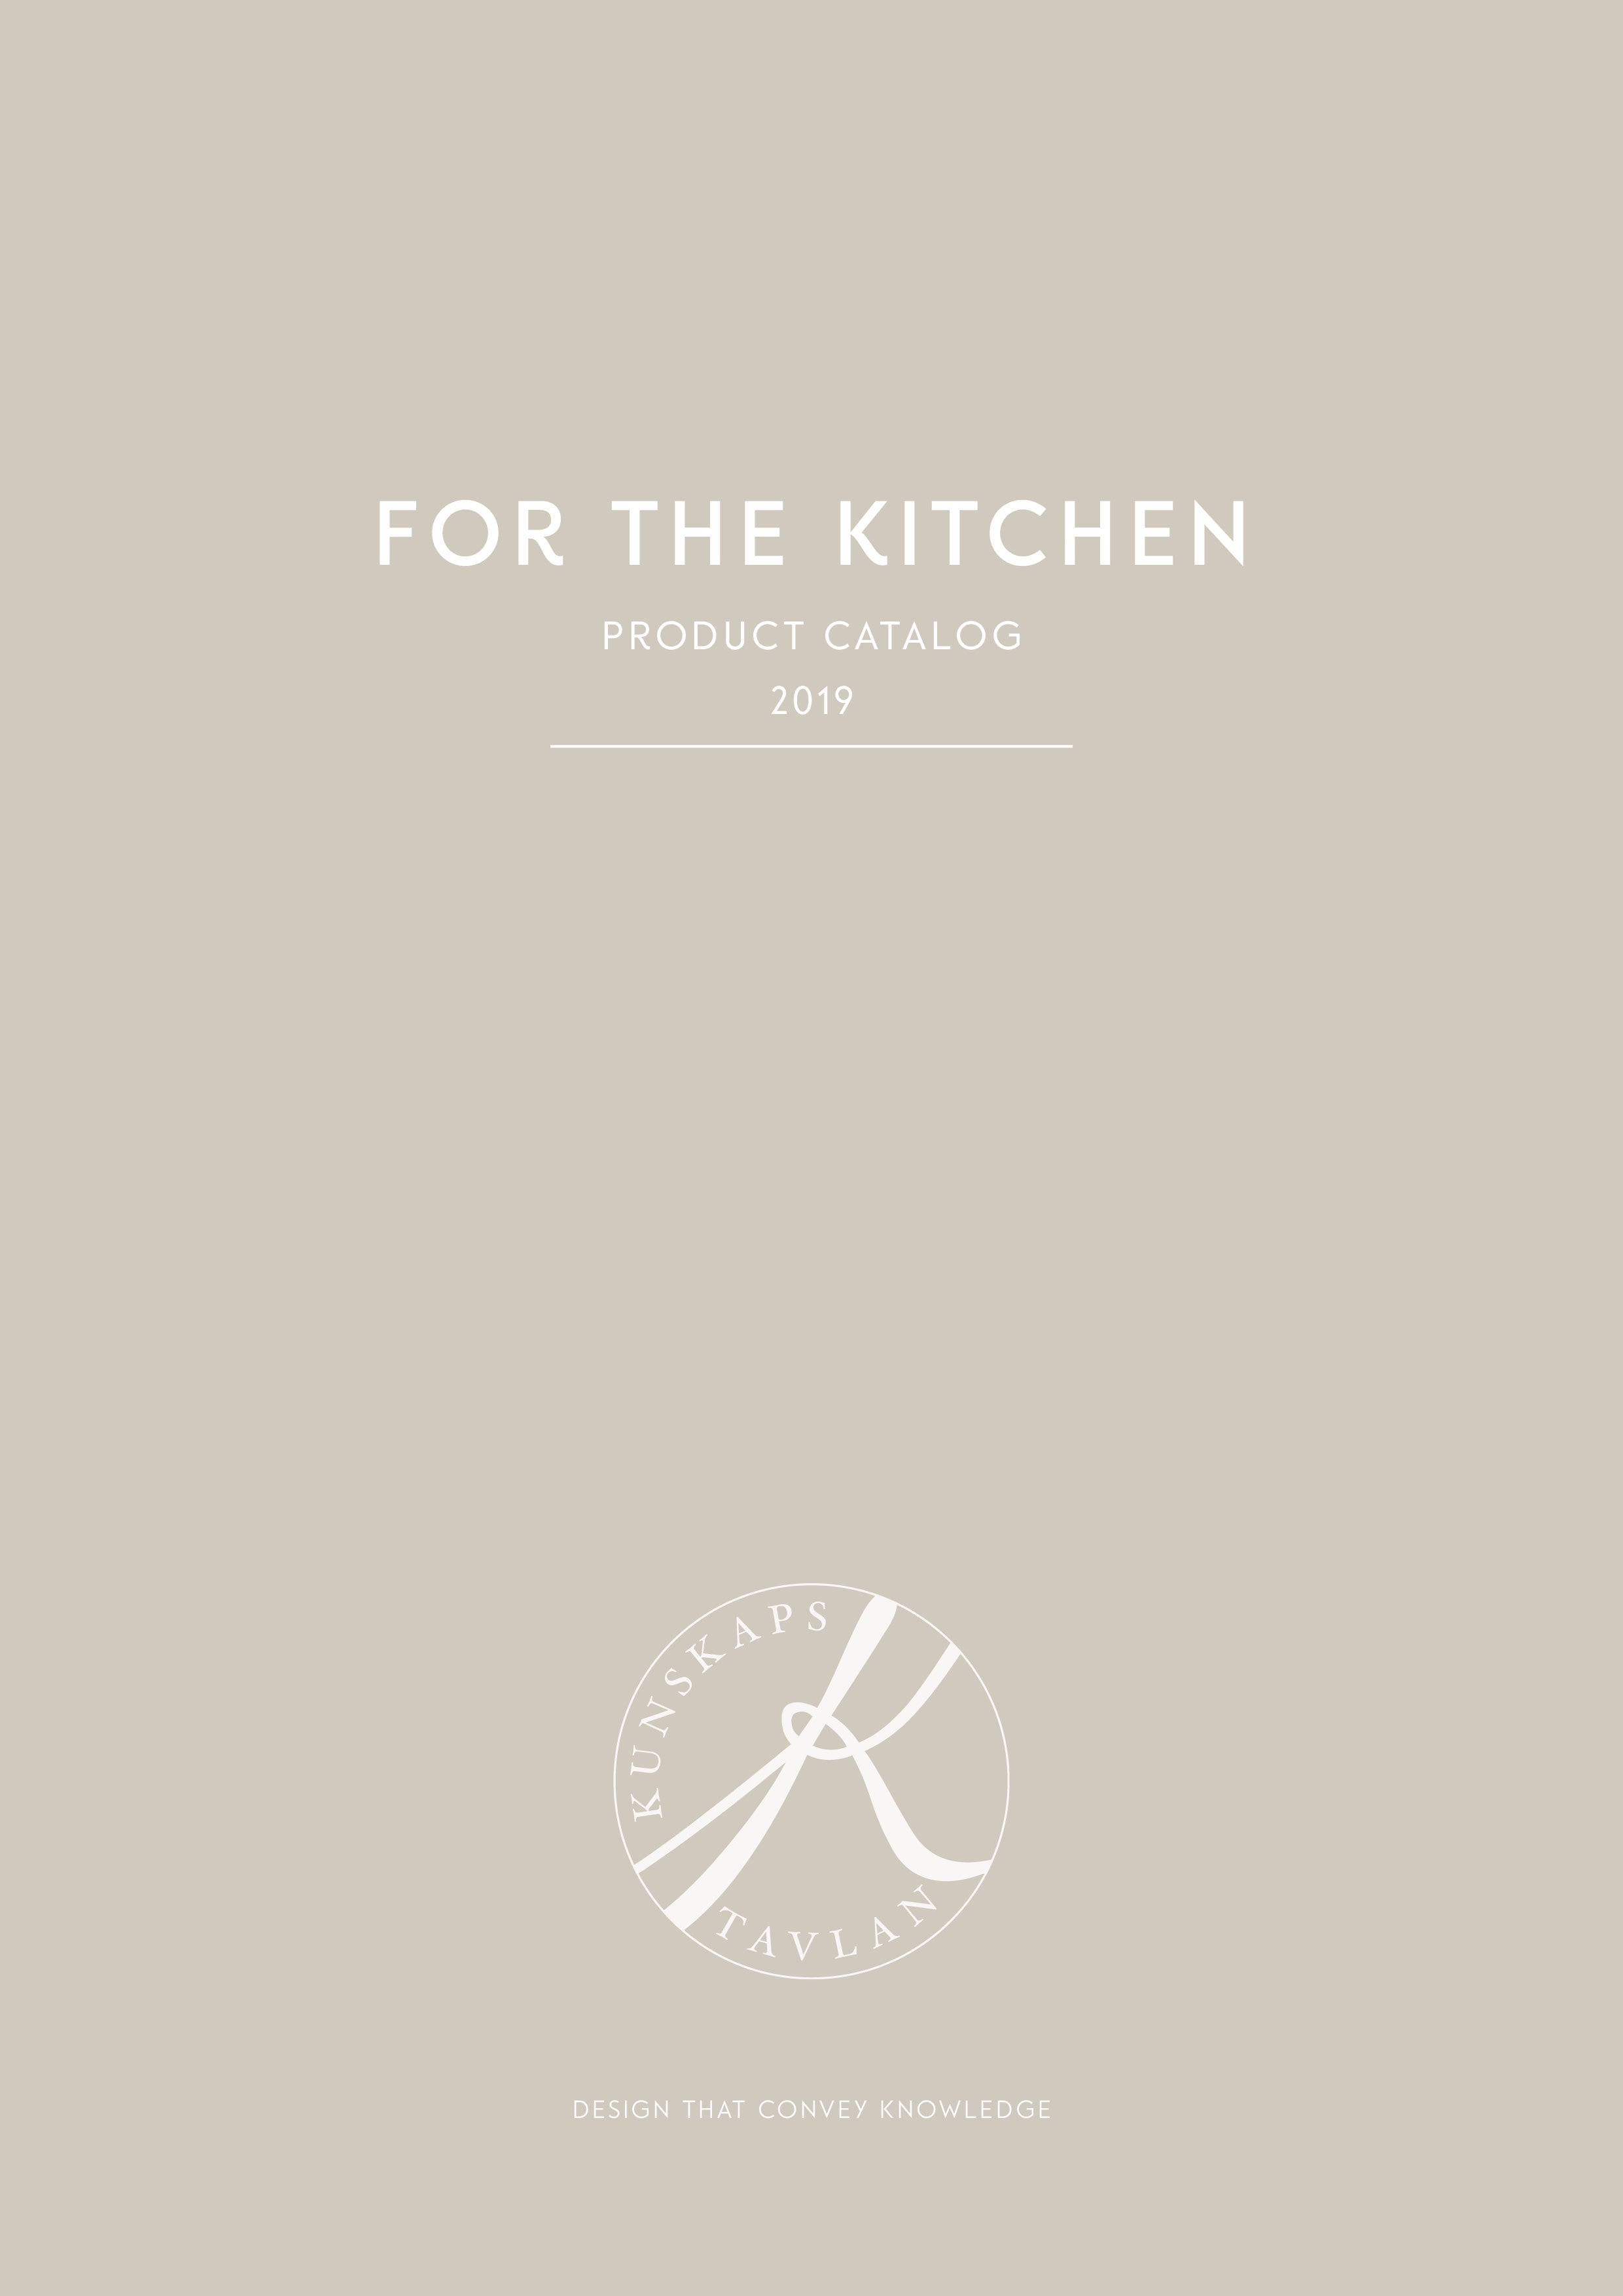 Kunskapstavlan Product Catalog For the Kitchen